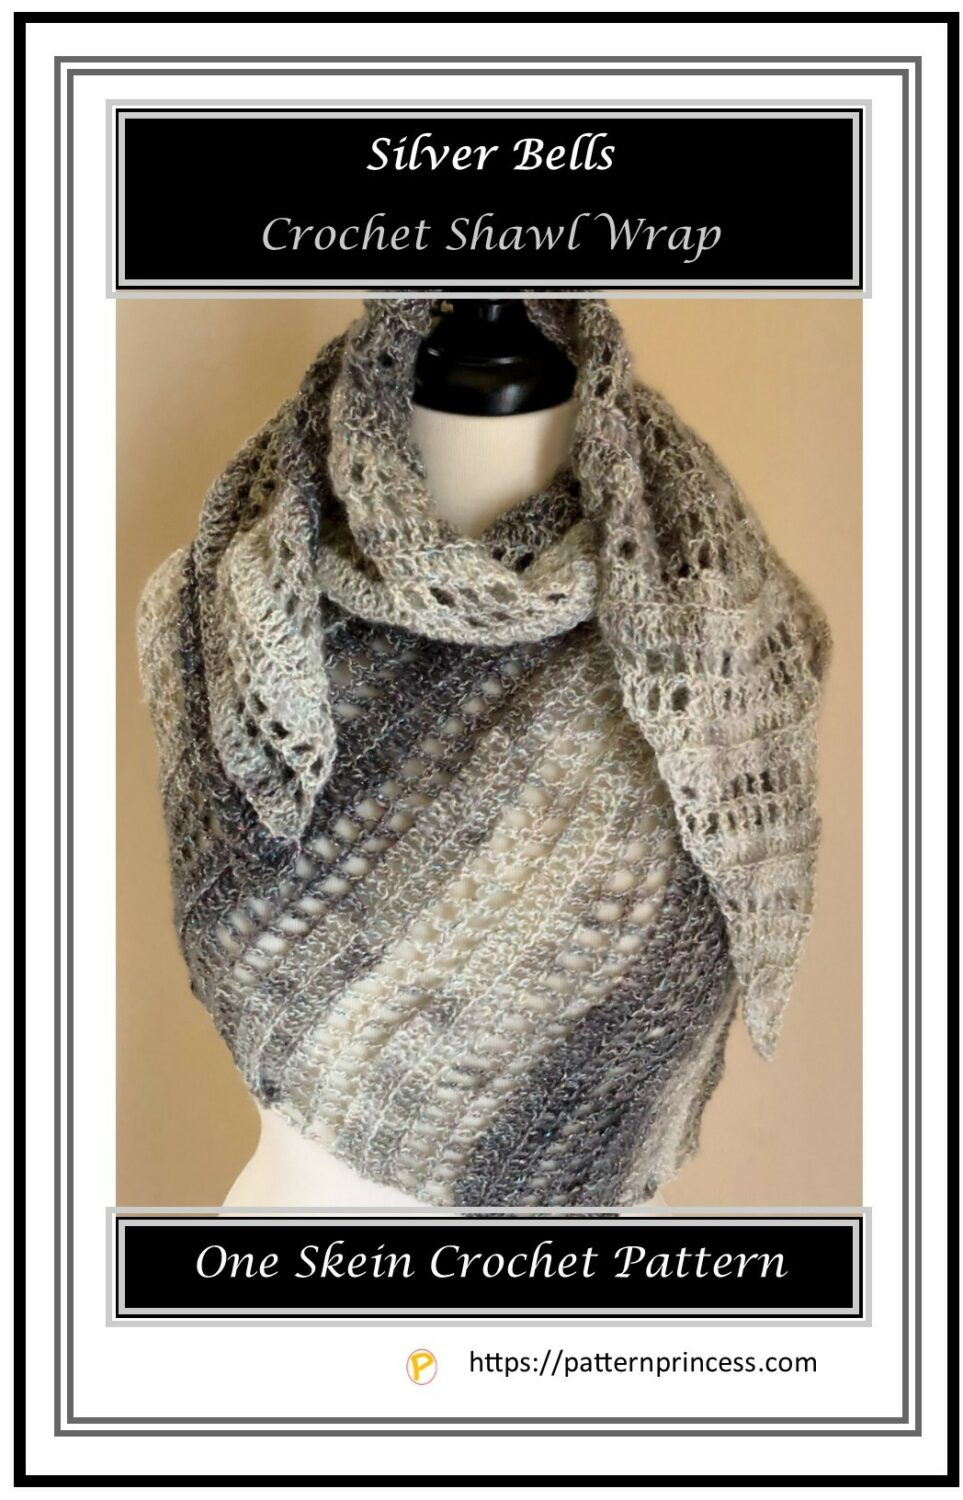 Silver Bells Crochet Shawl Wrap 1